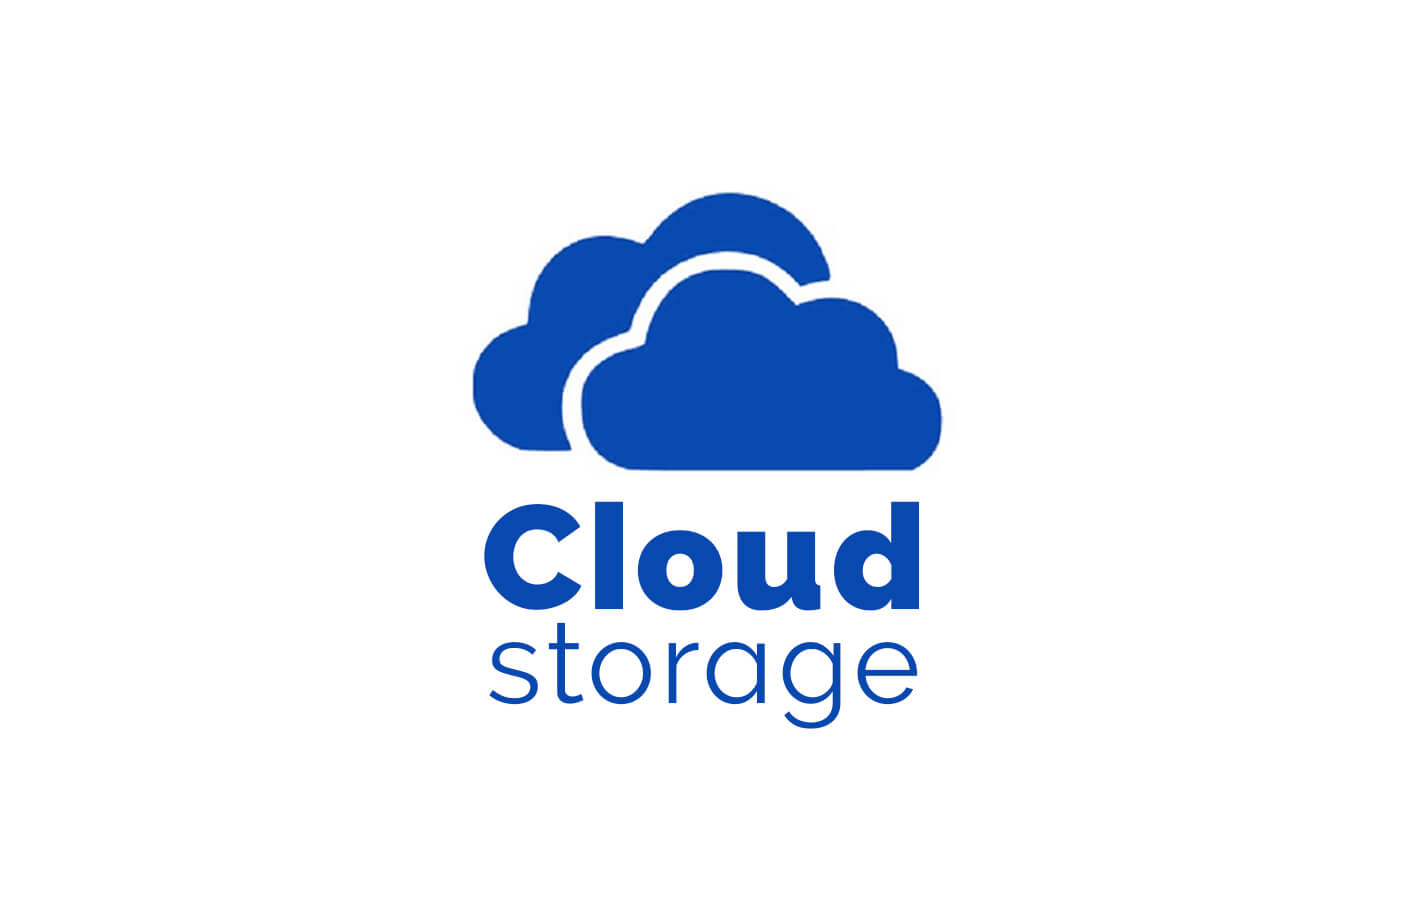 Laravel Cloud Storage Services